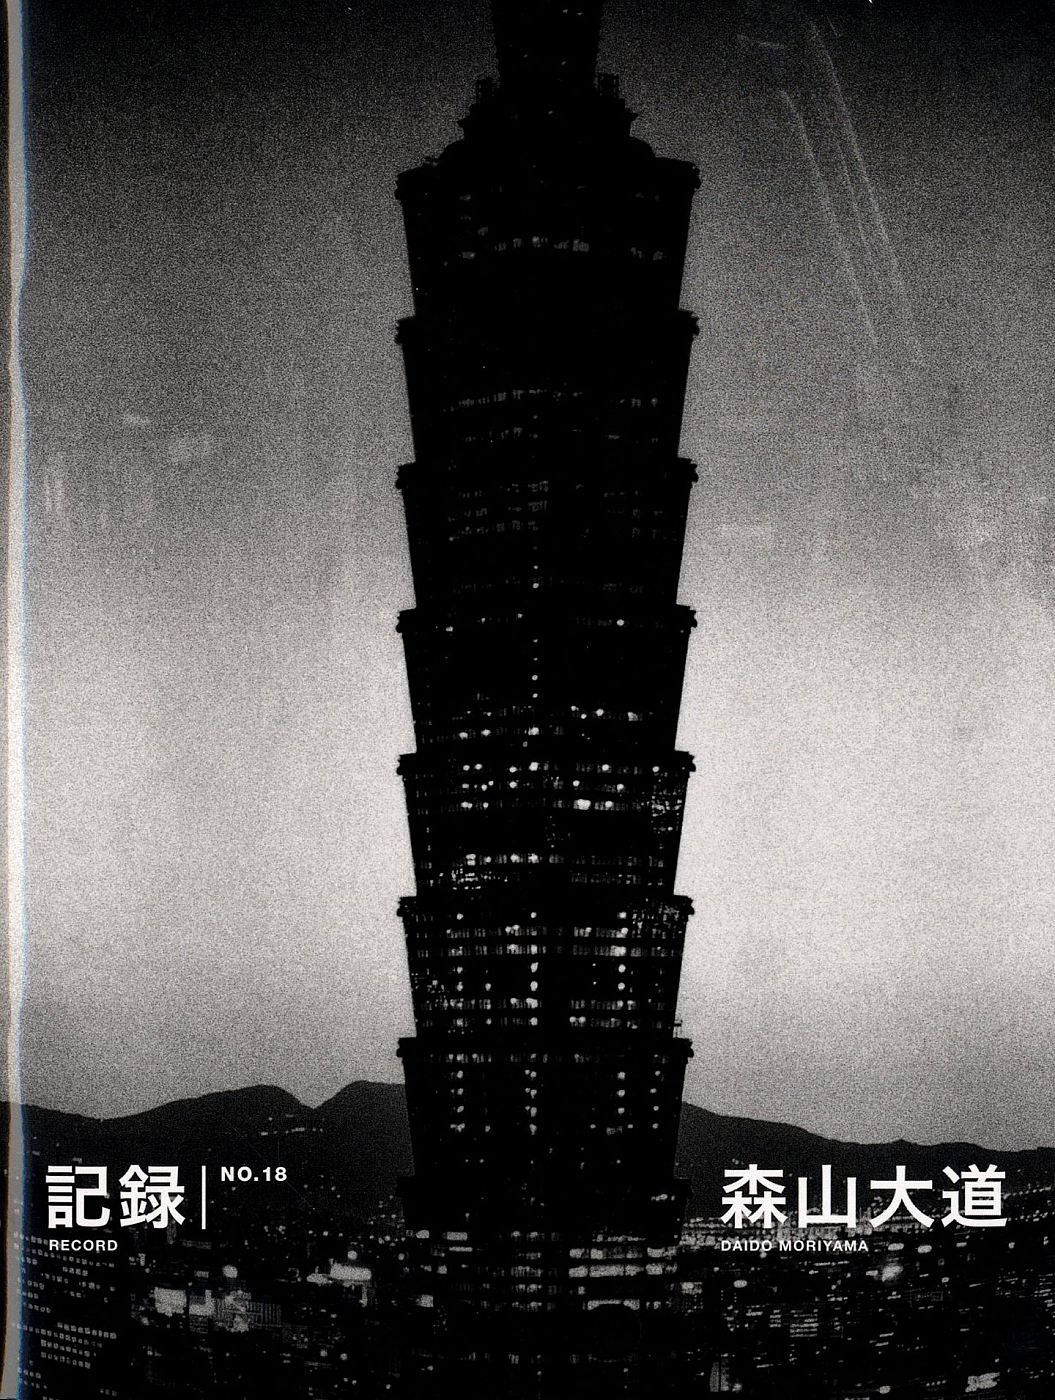 Daido Moriyama: Record Nos. 1-40 / Kiroku, Nos. 1-40, Complete Set (Includes Reprinted Edition of Nos. 1-5 and No. 6 through No. 40) [ALL TITLES SIGNED]